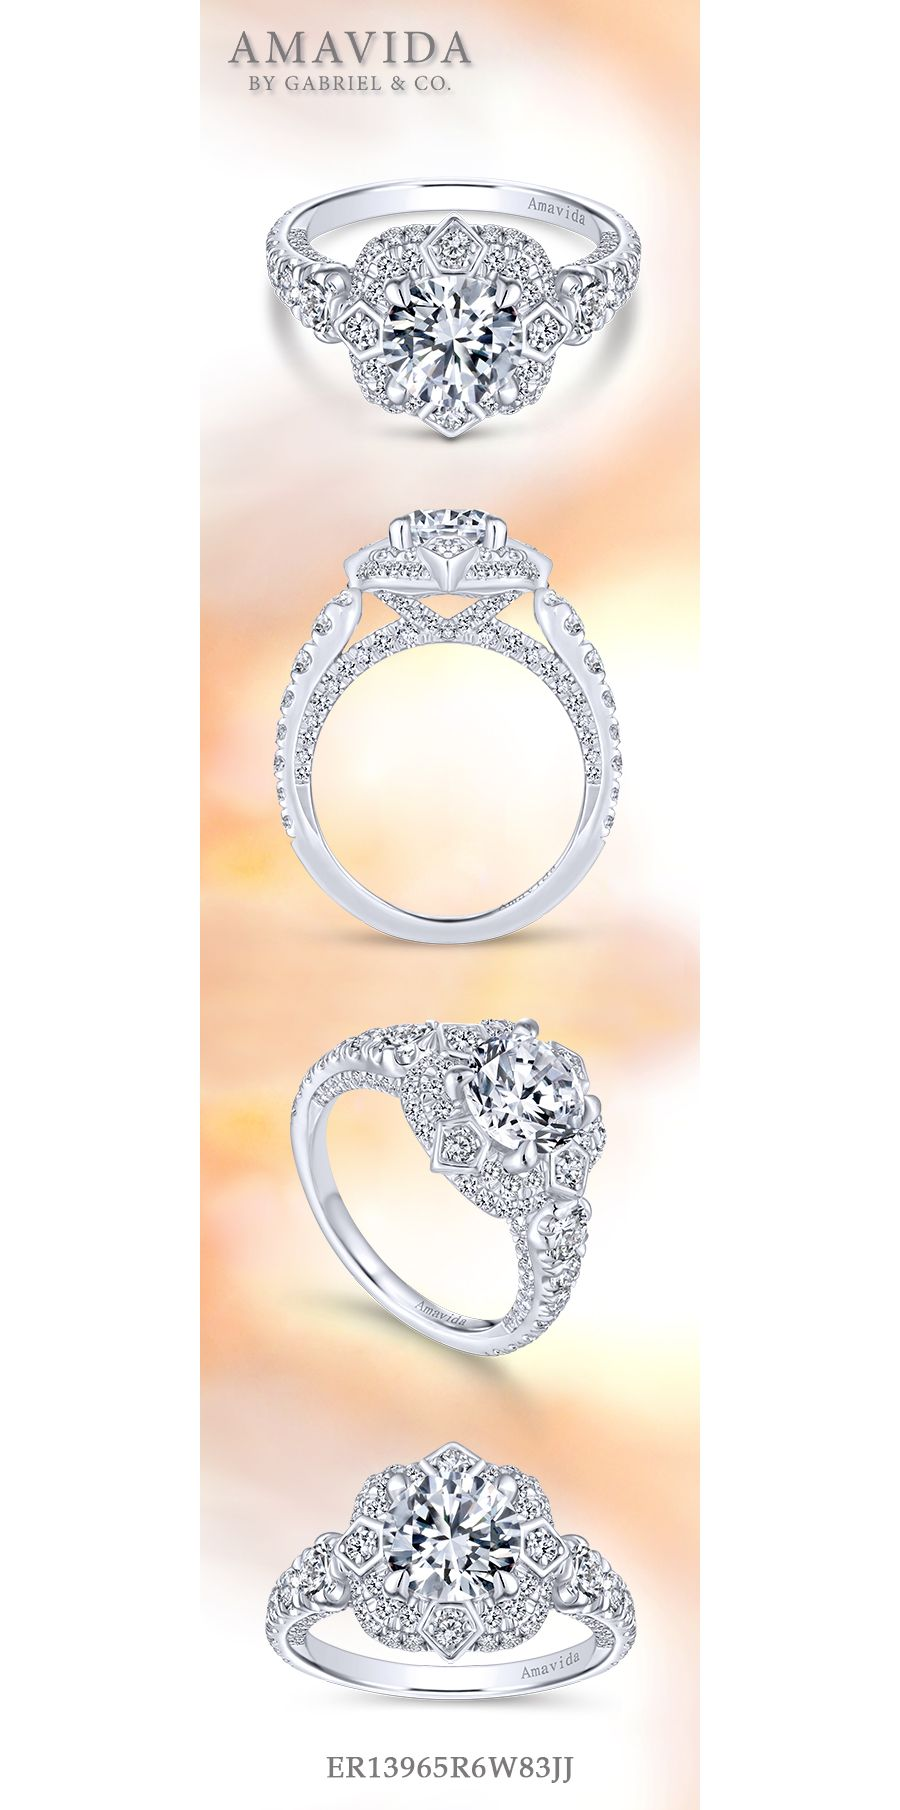 Unique 18K White Gold Art Deco Double Halo Engagement Ring